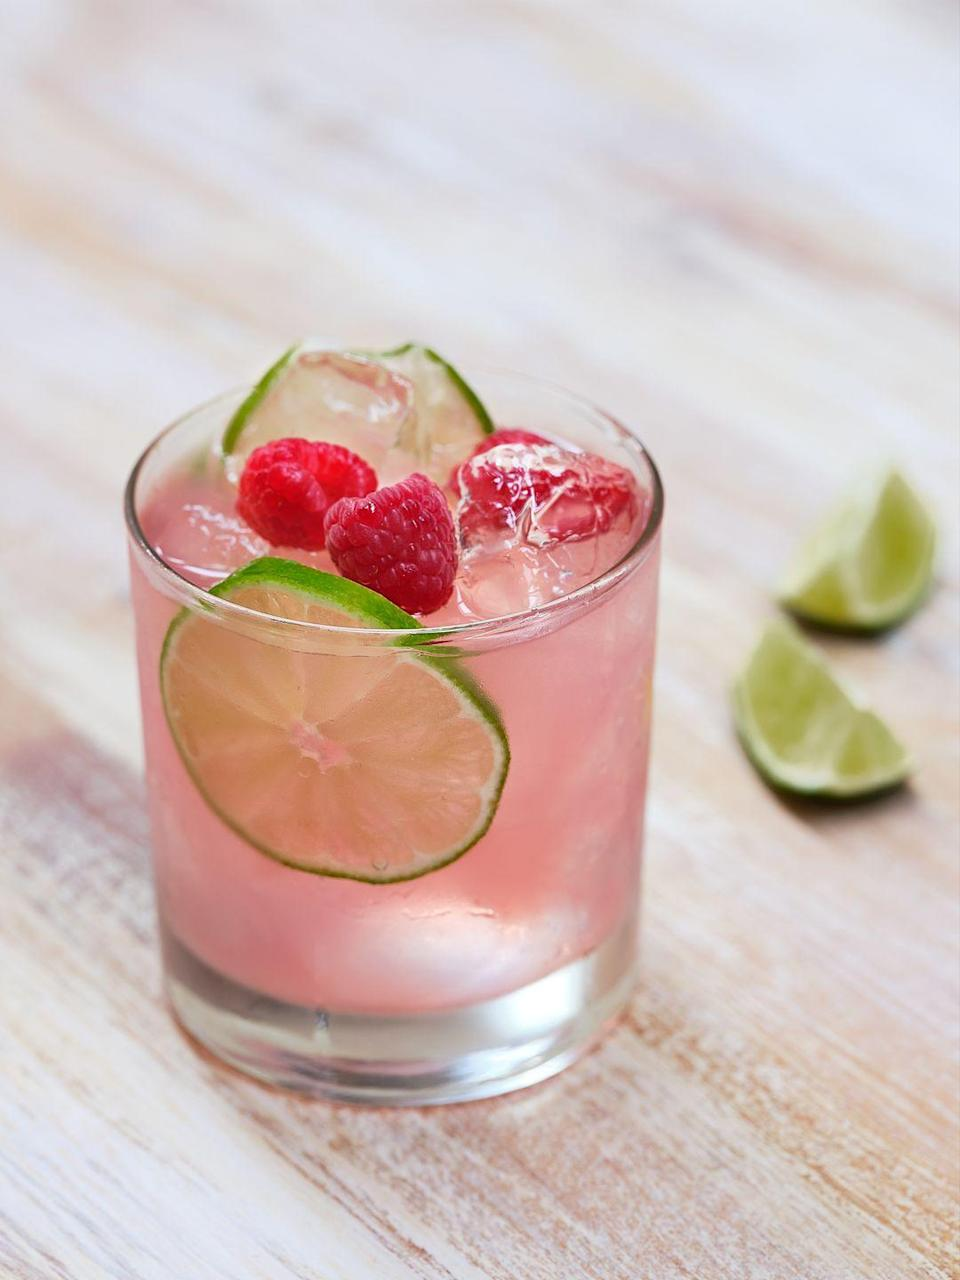 "<p><strong>Ingredients:</strong></p><p>2 oz. Kleos Mastiha (Greek liqueur)</p><p>1.5 oz. cointreau</p><p>1 oz. fresh squeezed lime juice</p><p>1 oz. club soda </p><p><strong>Directions:</strong></p><p>Combine ingredients and top with club soda. Garnish your beverage with raspberries and lime slices. </p><p><em>Courtesy of Arielle Natale, Bar Manager, <a href=""https://urldefense.com/v3/__https://www.elaiaestiatorio.com/__;!!Ivohdkk!zI3FkGGxYtBi5bzVc-FFRF-xdja0hDlQrFS6I1dP0aOnewGUO_JyFJ99mVqsBw$"" rel=""nofollow noopener"" target=""_blank"" data-ylk=""slk:Elaia Estiatorio"" class=""link rapid-noclick-resp"">Elaia Estiatorio</a>, Bridgehampton</em></p>"